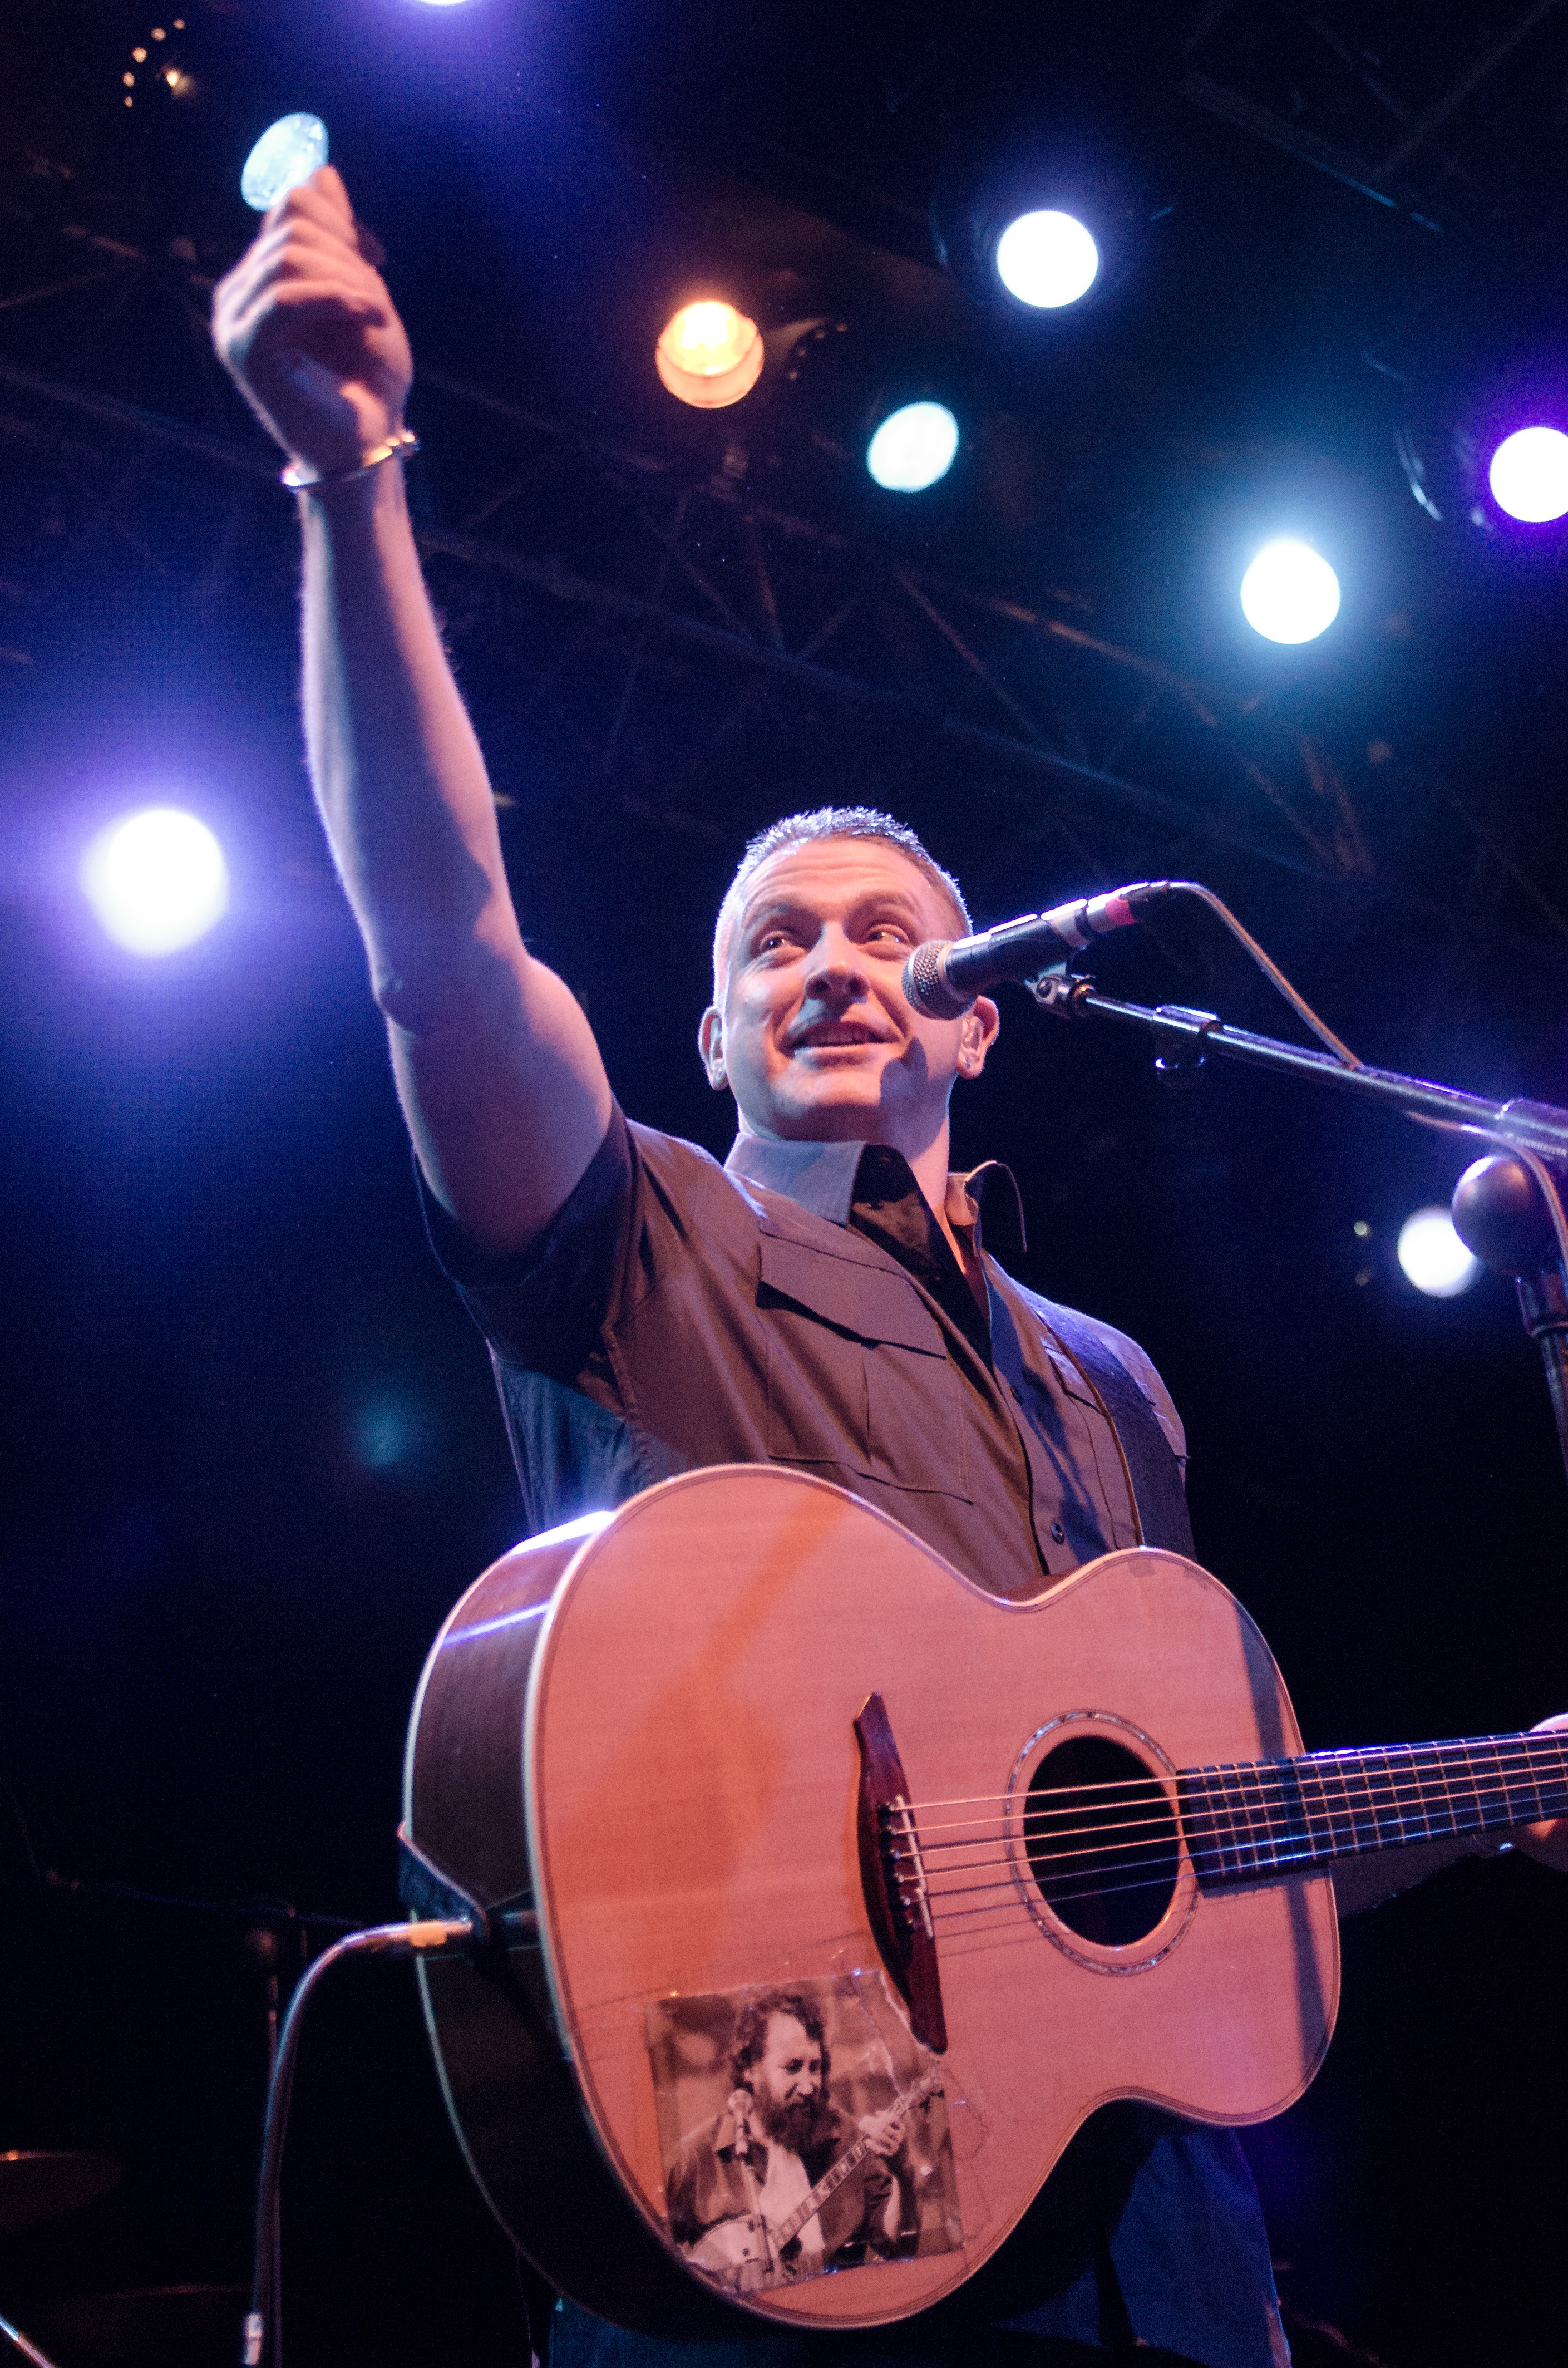 damien-dempsey-at-vicar-street-by-sean-smyth-9-12-15-16-of-34